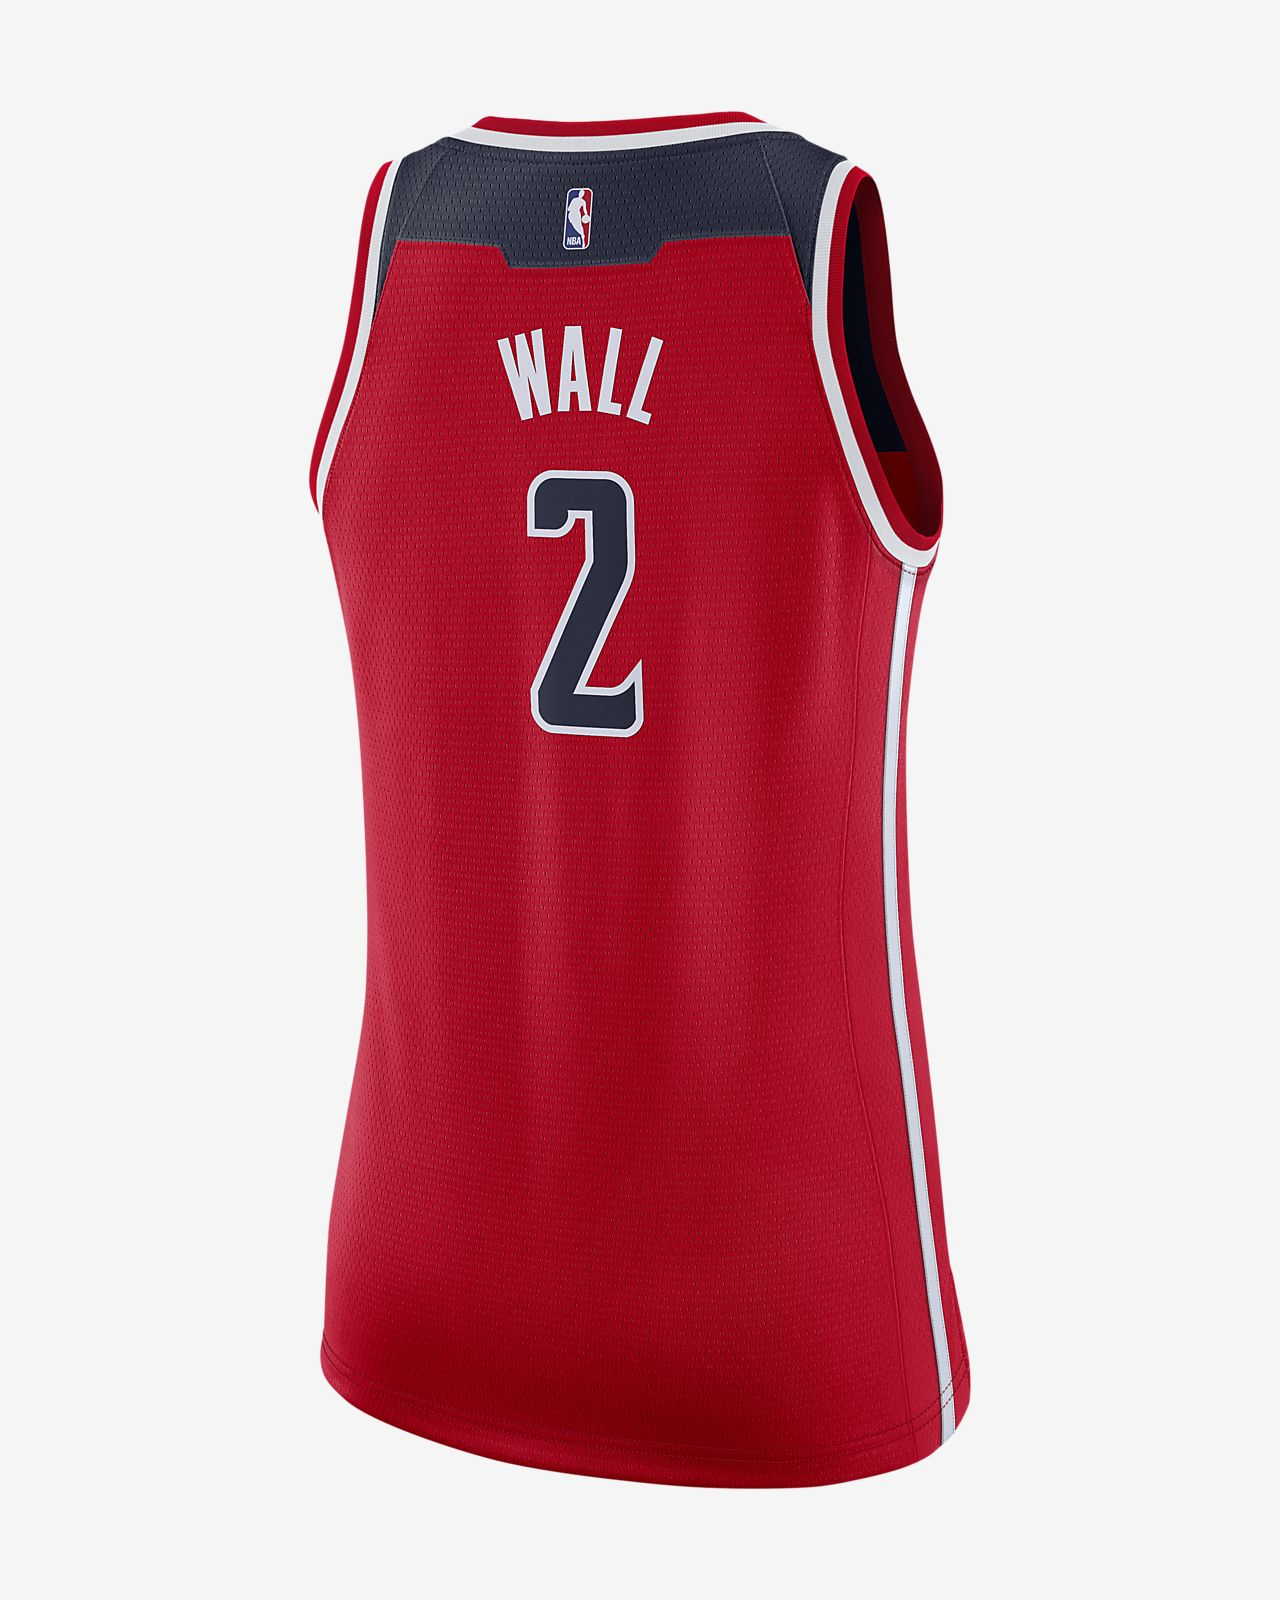 separation shoes 7719e a0af2 ... John Wall Icon Edition Swingman (Washington Wizards) Women s Nike NBA  Connected Jersey